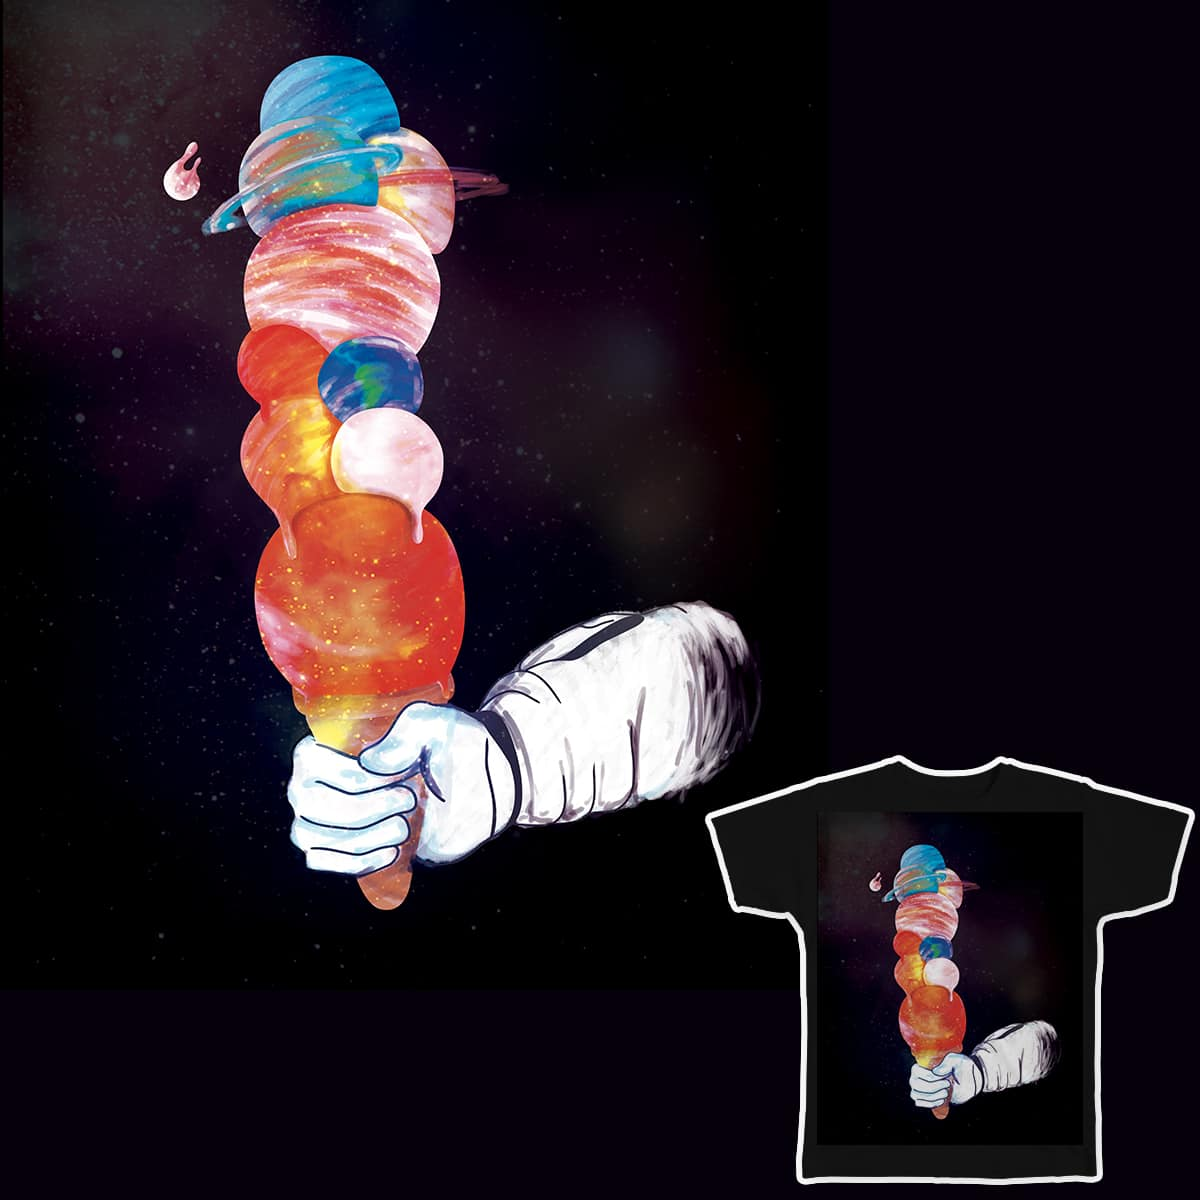 Space ice cream by Sr_Aderezo on Threadless